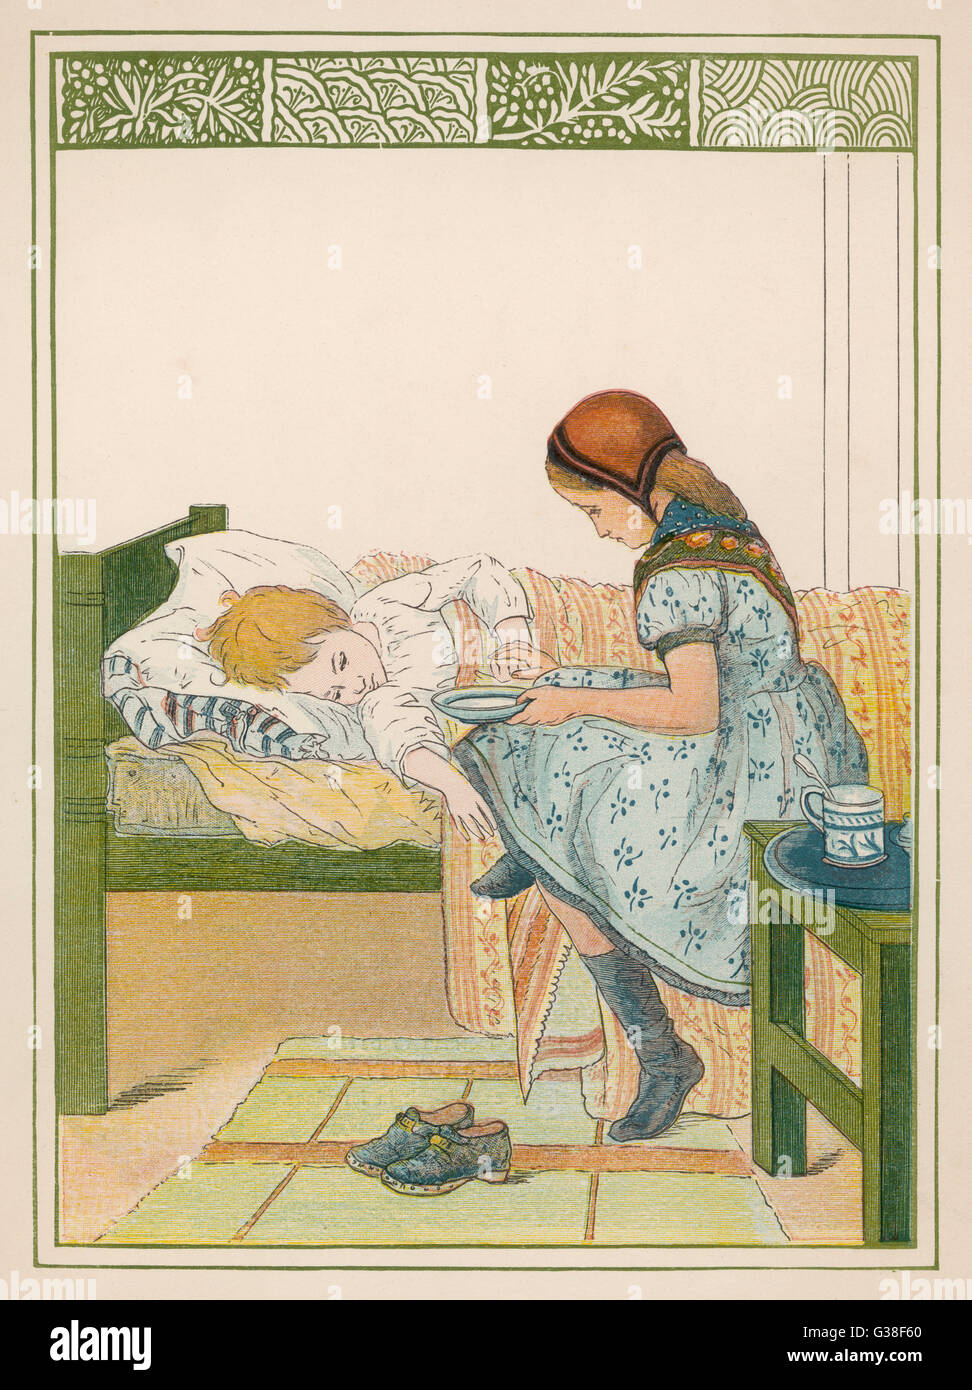 CLOGS  A young girl acting as nurse  has removed her clogs and sits  on the edge of the sickbed  while she offers - Stock Image